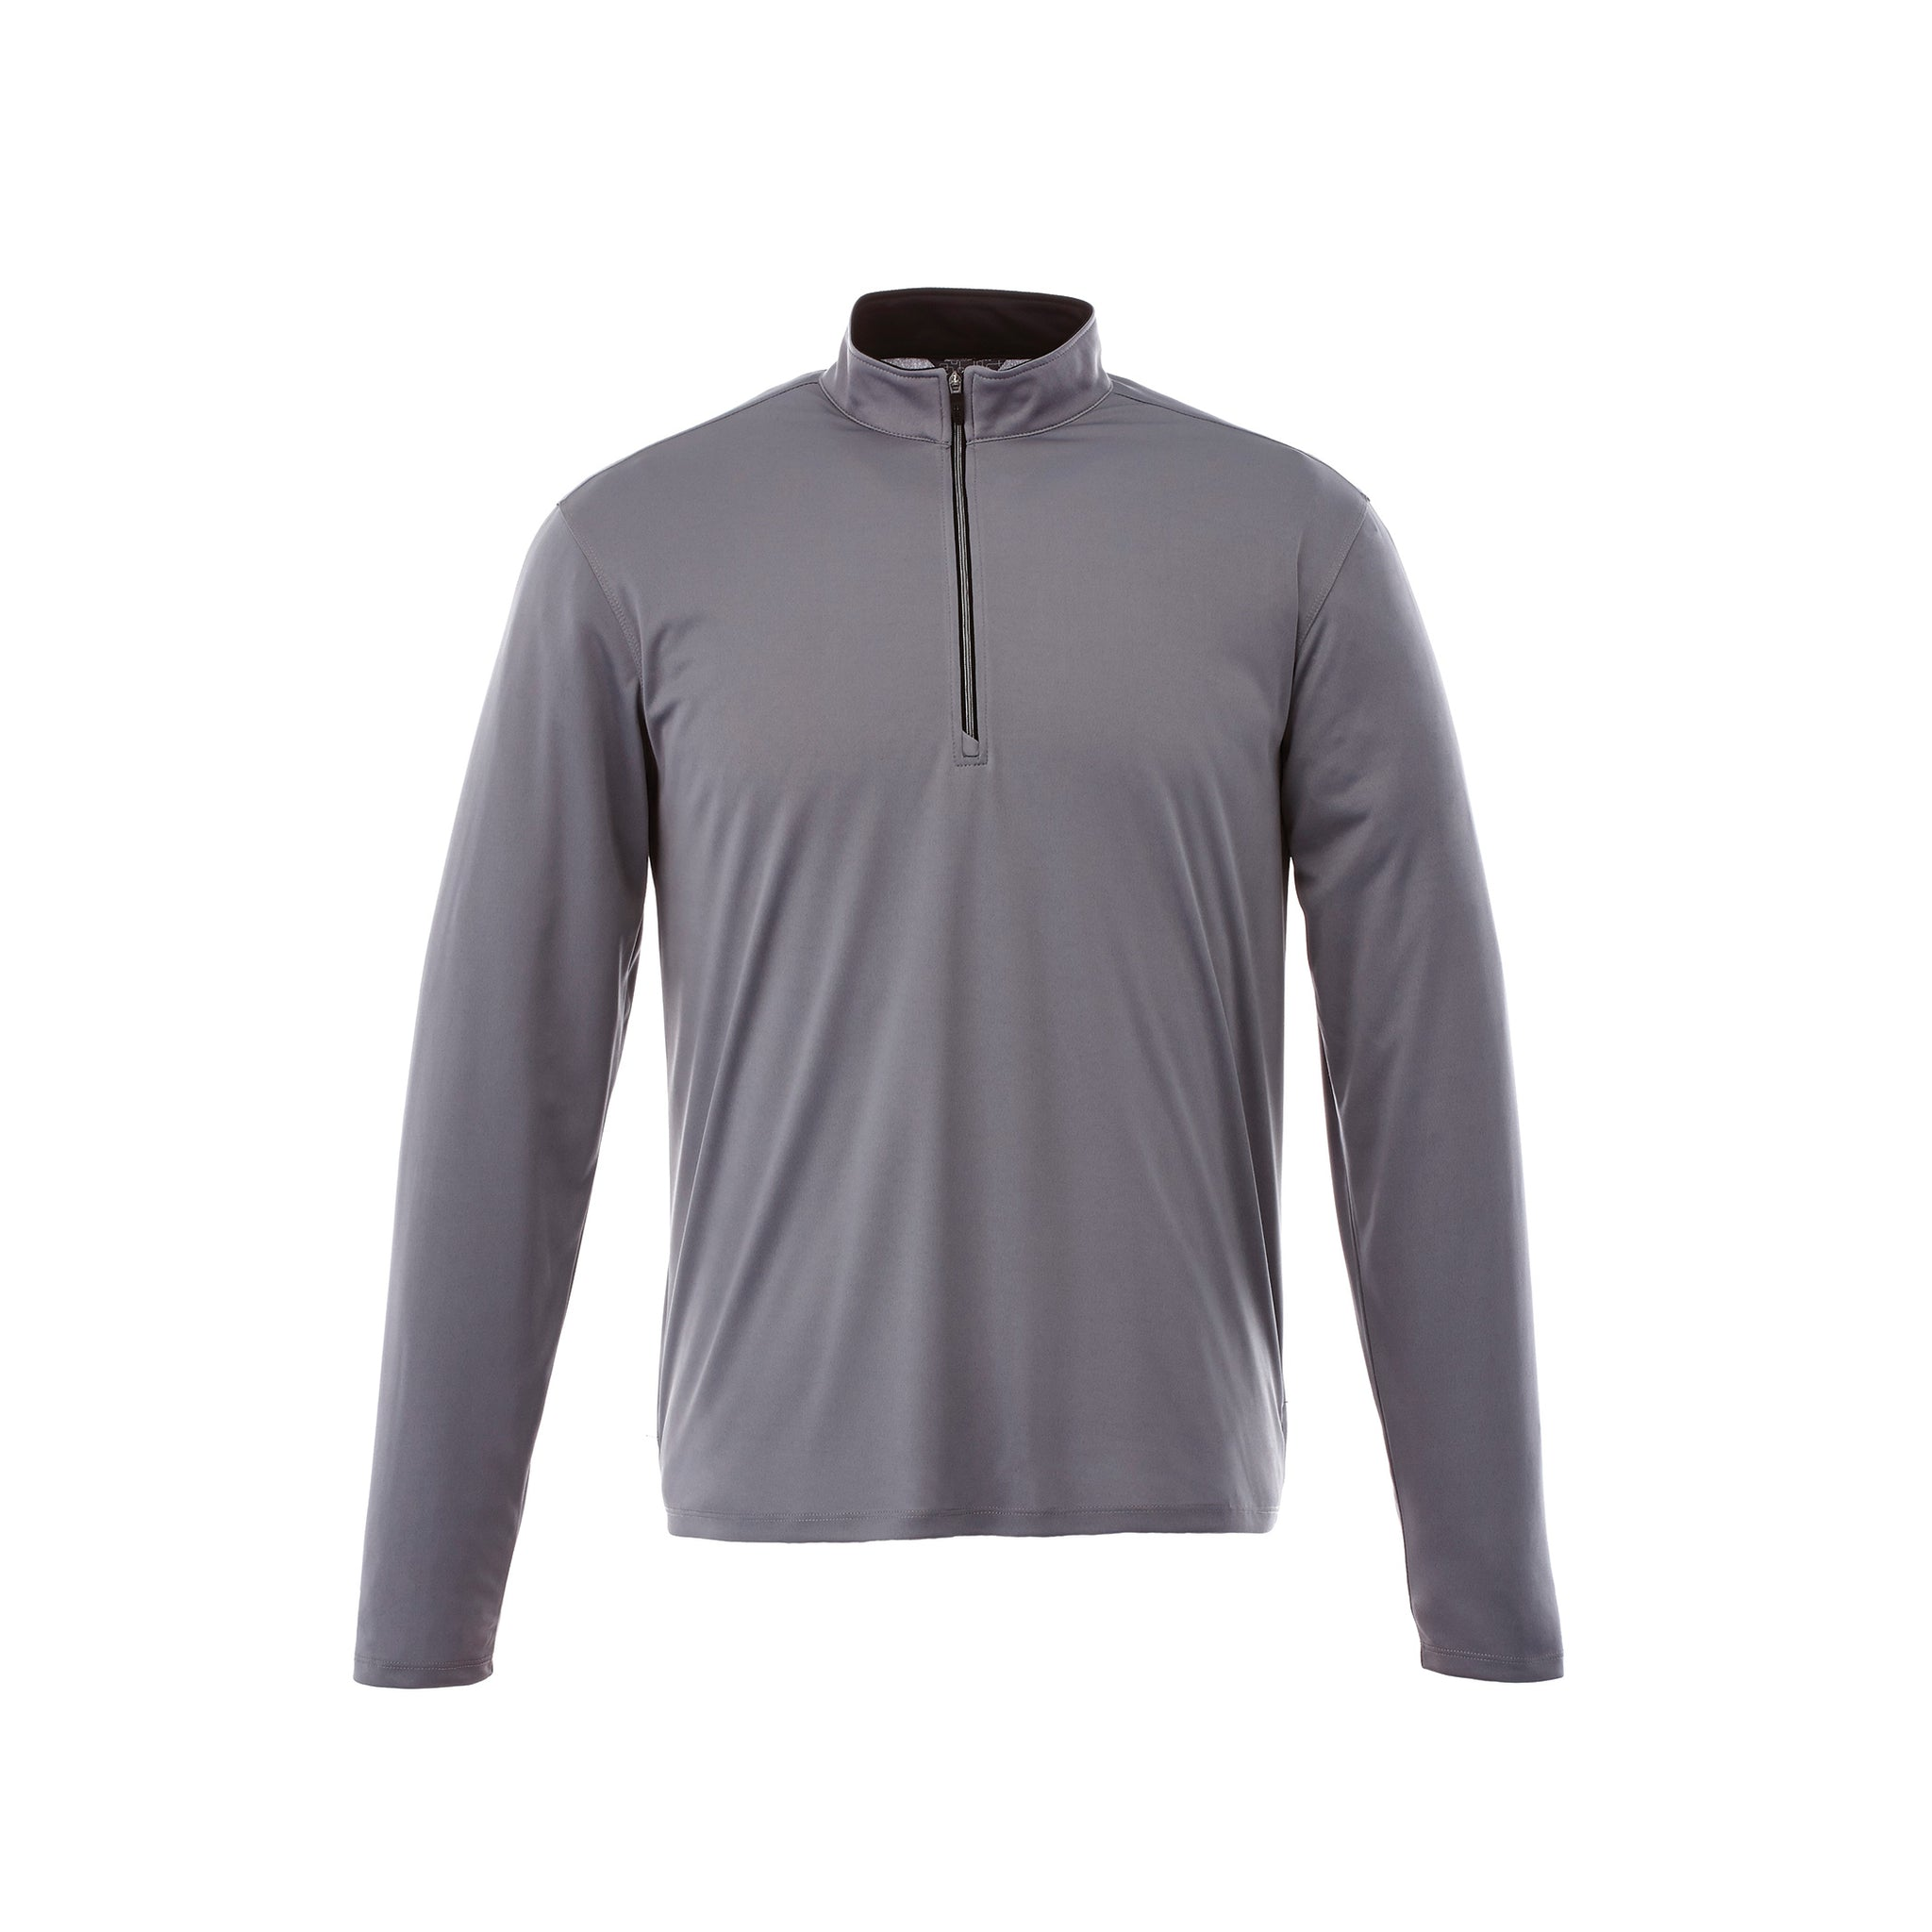 ELEVATE YOUTH VEGA TECH QUARTER ZIP